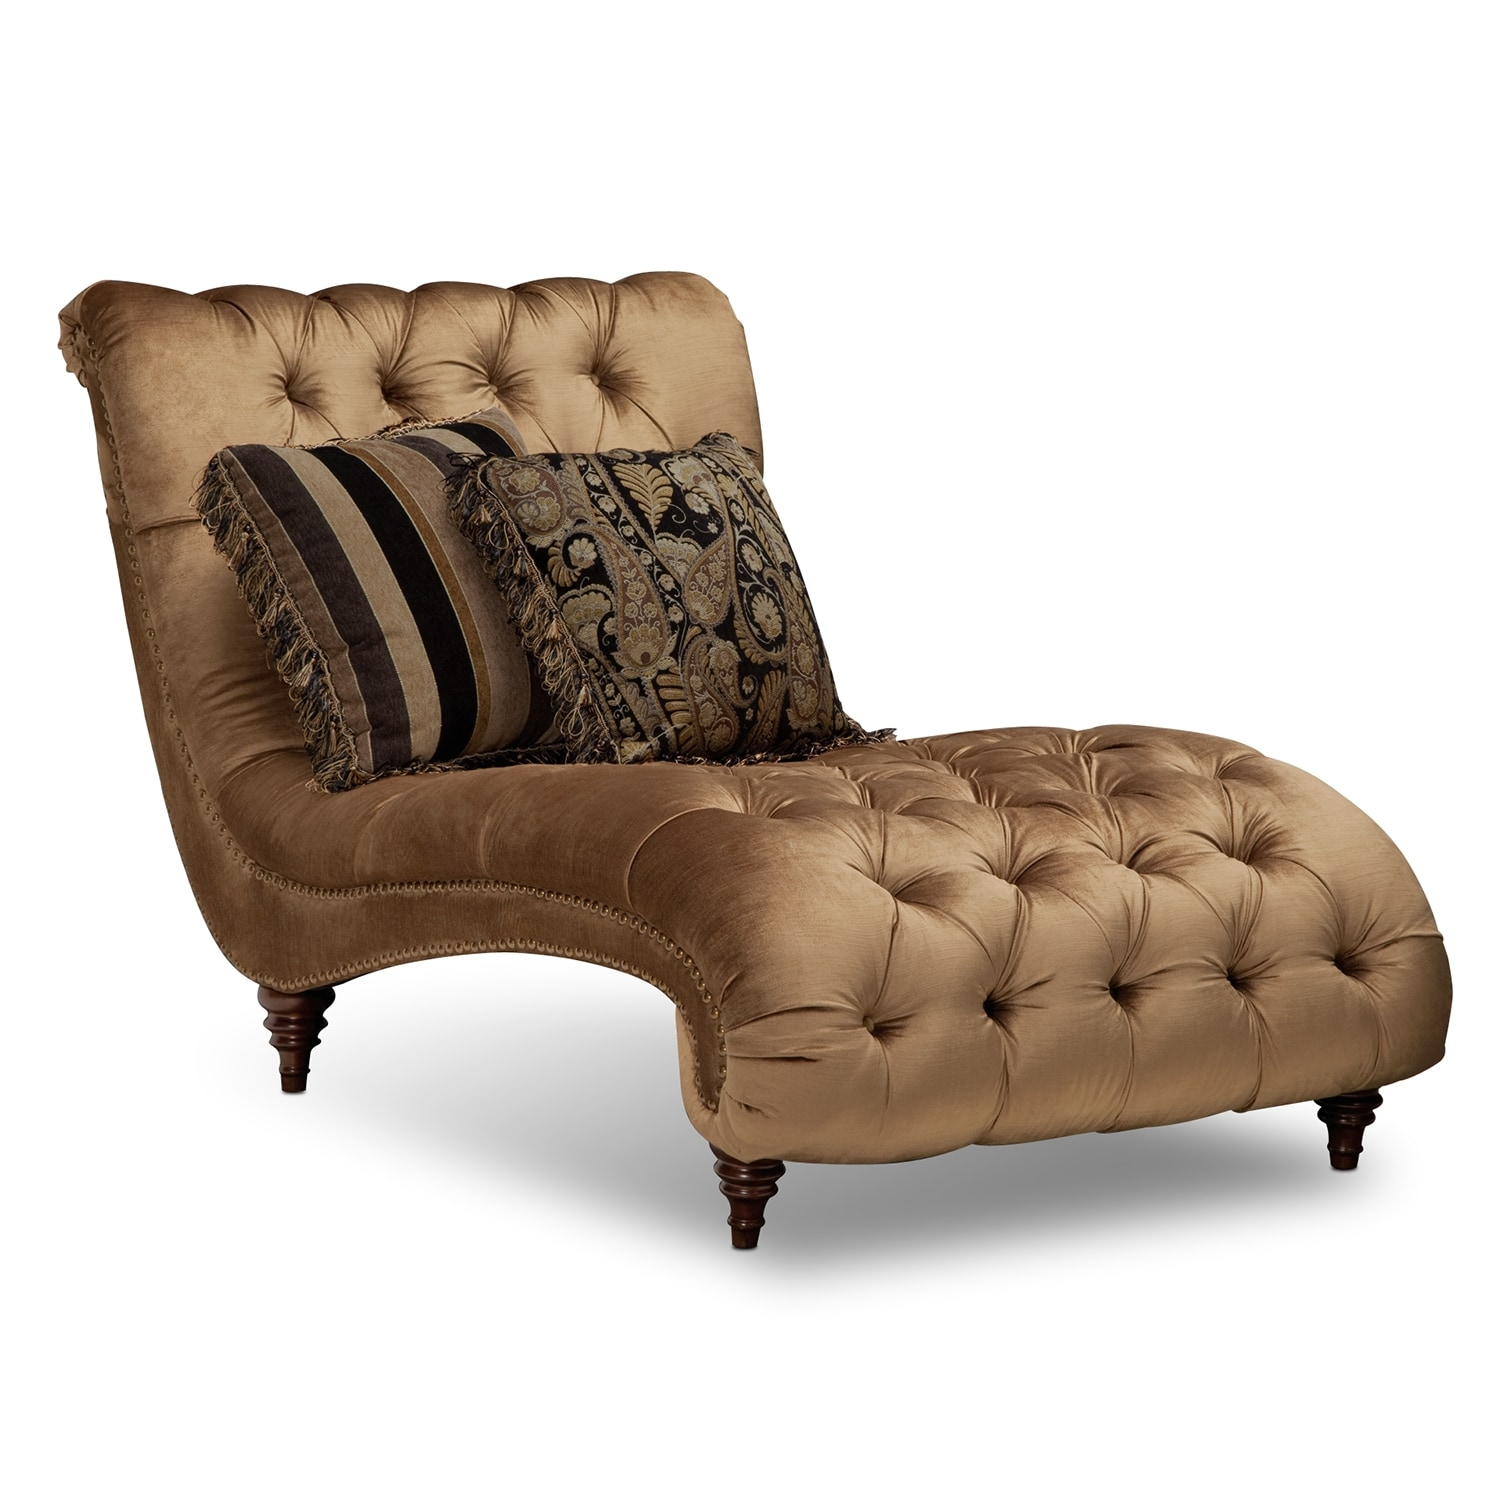 appealing living room chaise lounge | Brittney Sofa, Chaise and Chair Set - Bronze | Value City ...